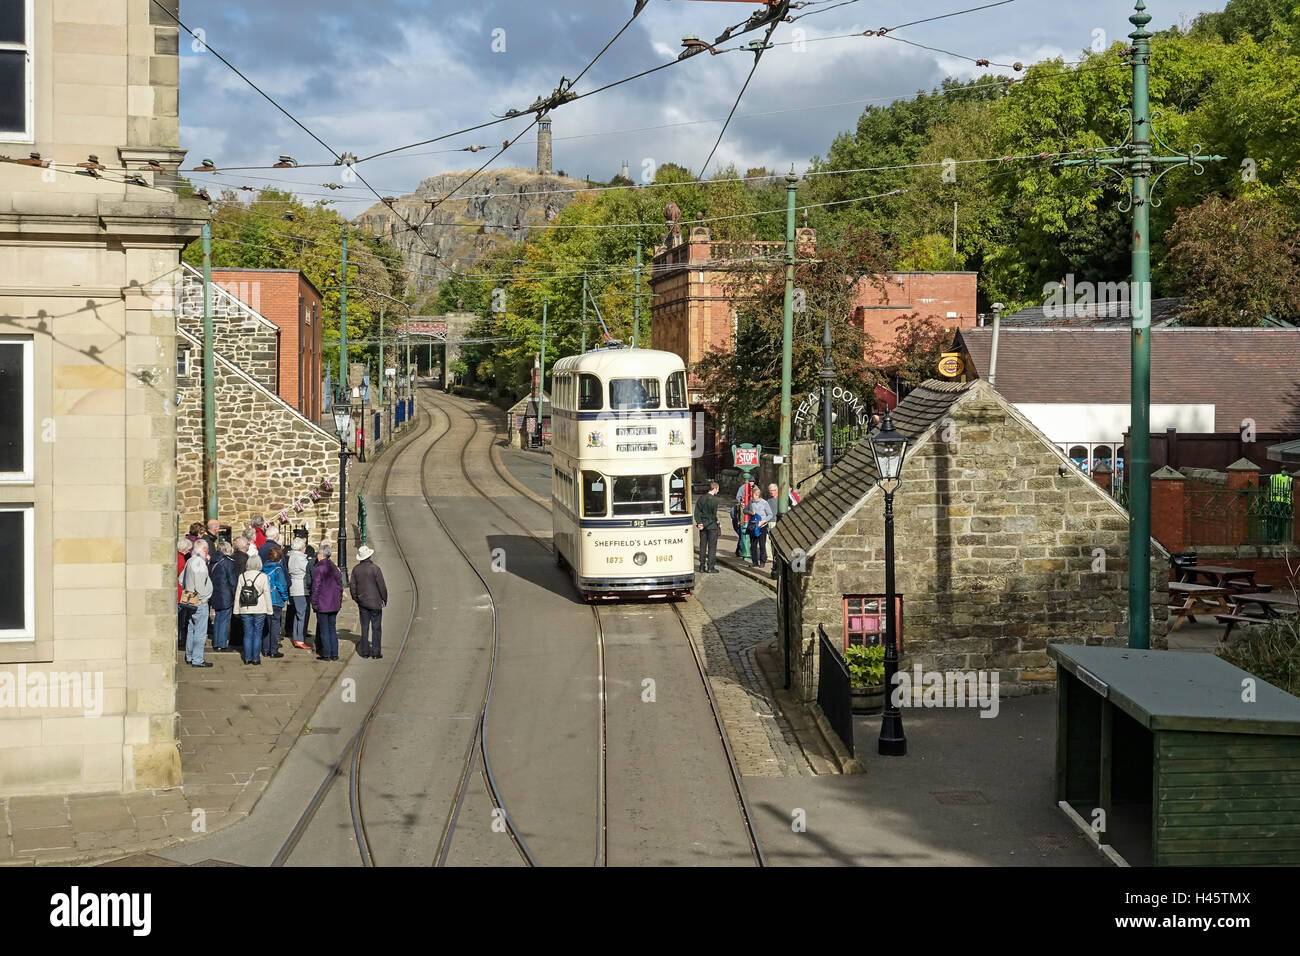 Last Trams Stock Photos & Last Trams Stock Images - Alamy